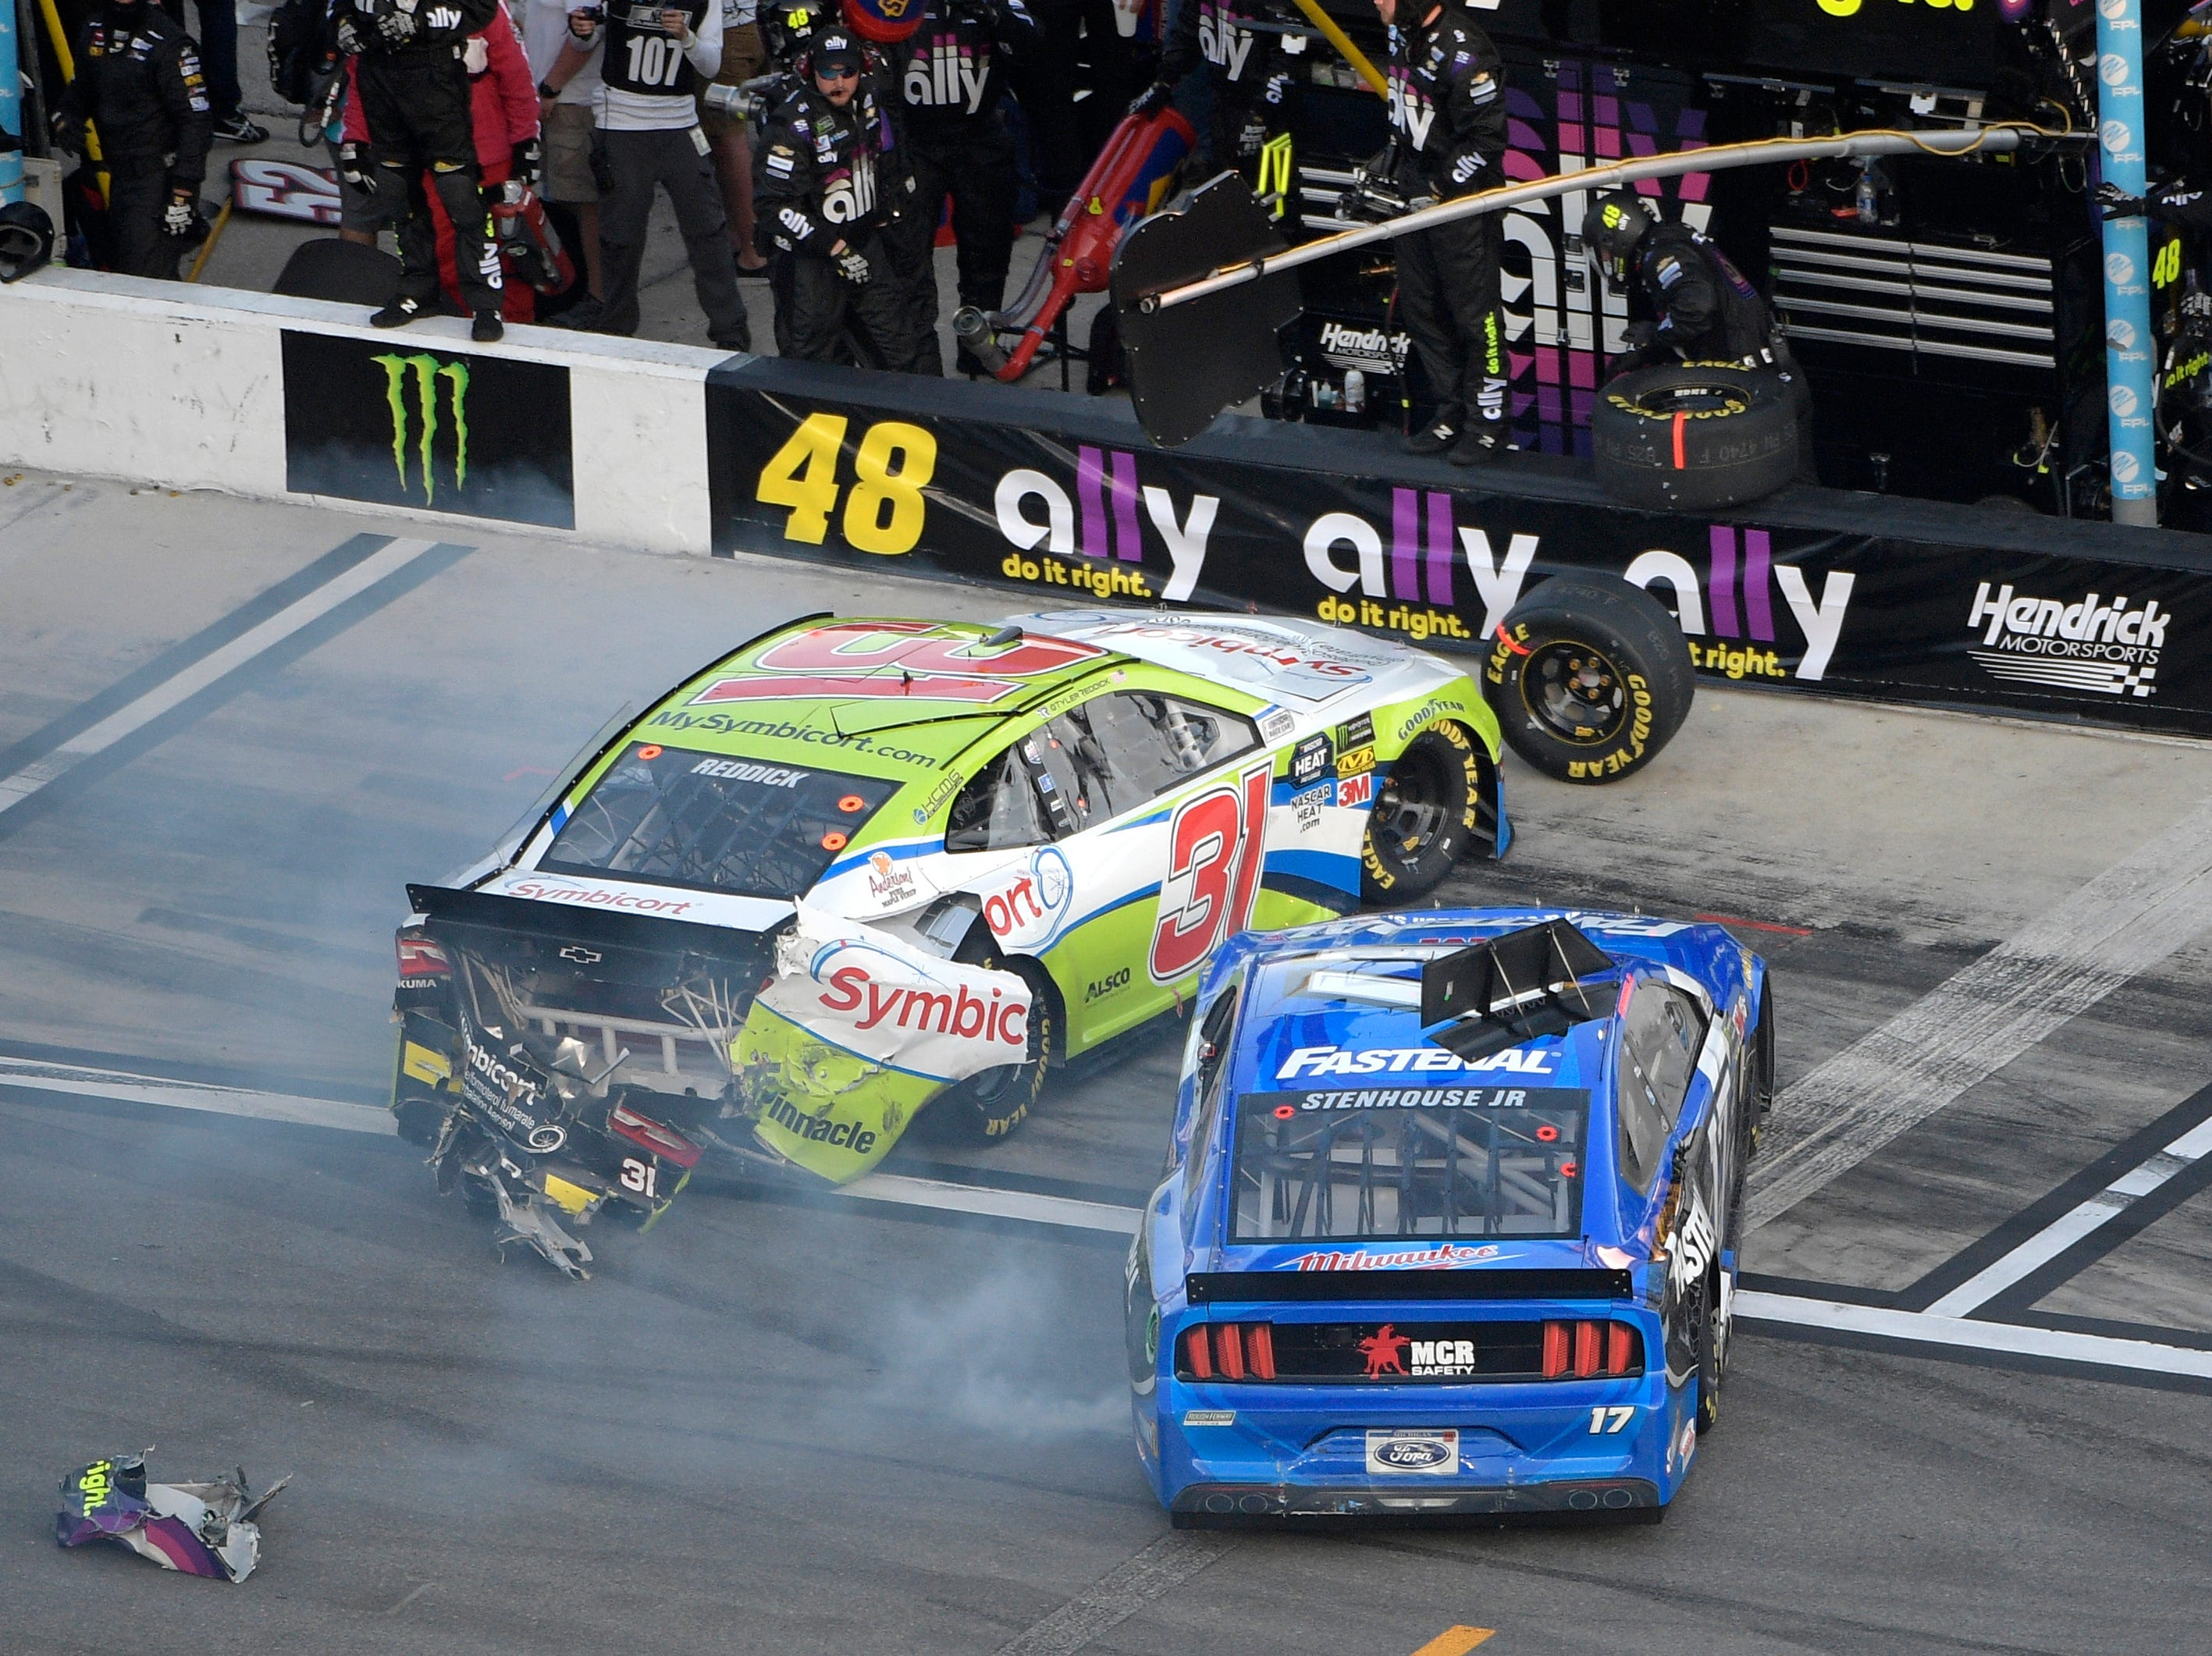 Tyler Reddick (31) and Ricky Stenhouse Jr. (17) slide into a pit stall after colliding during a NASCAR Daytona 500 auto race at Daytona International Speedway.